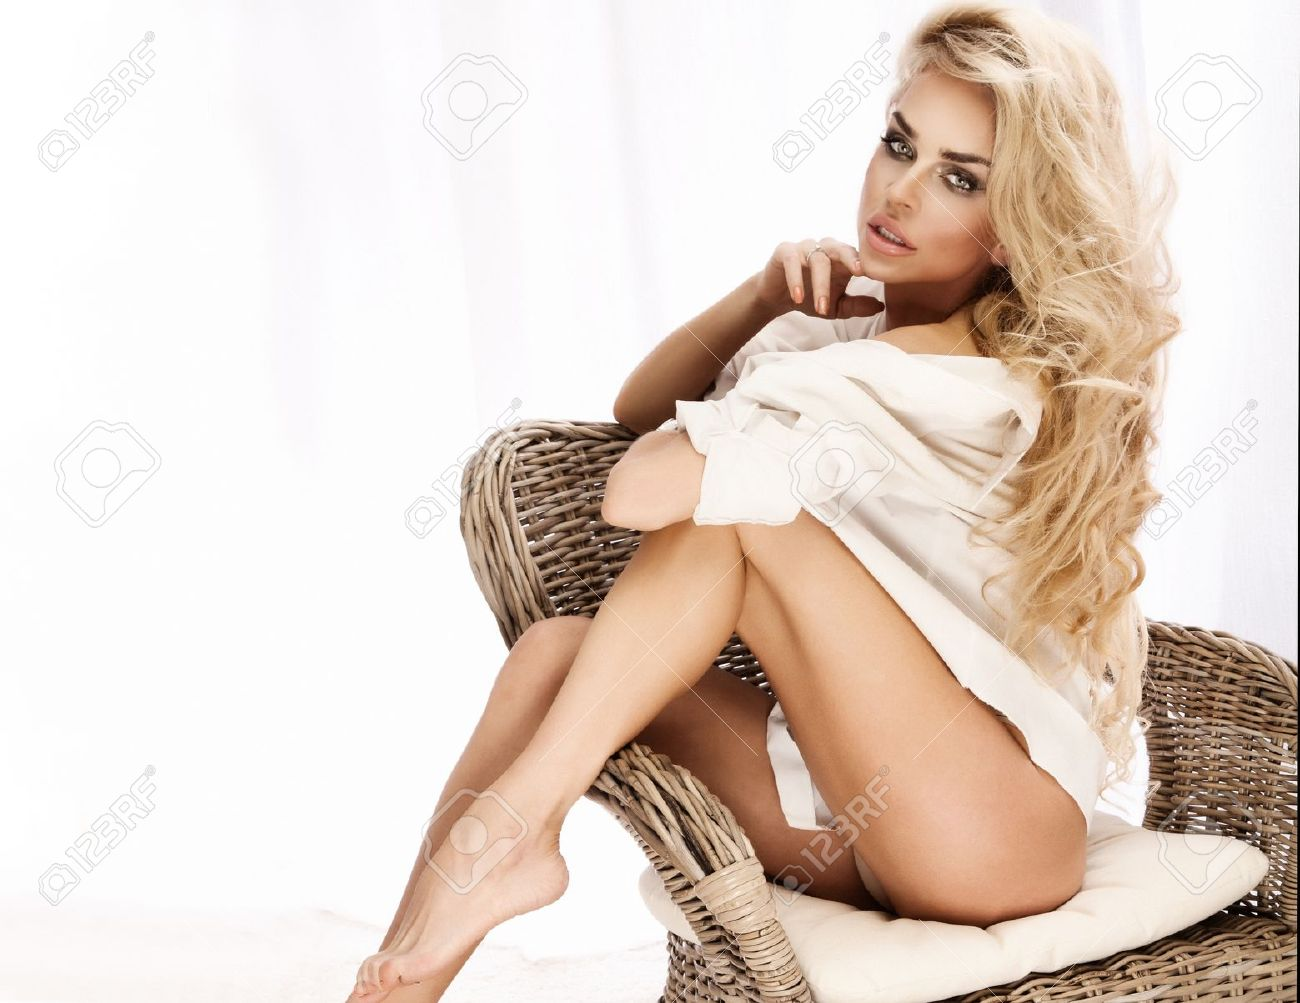 Portrait of beautiful young sexy woman sitting on chair, wearing white shirt. Stock Photo - 18824332